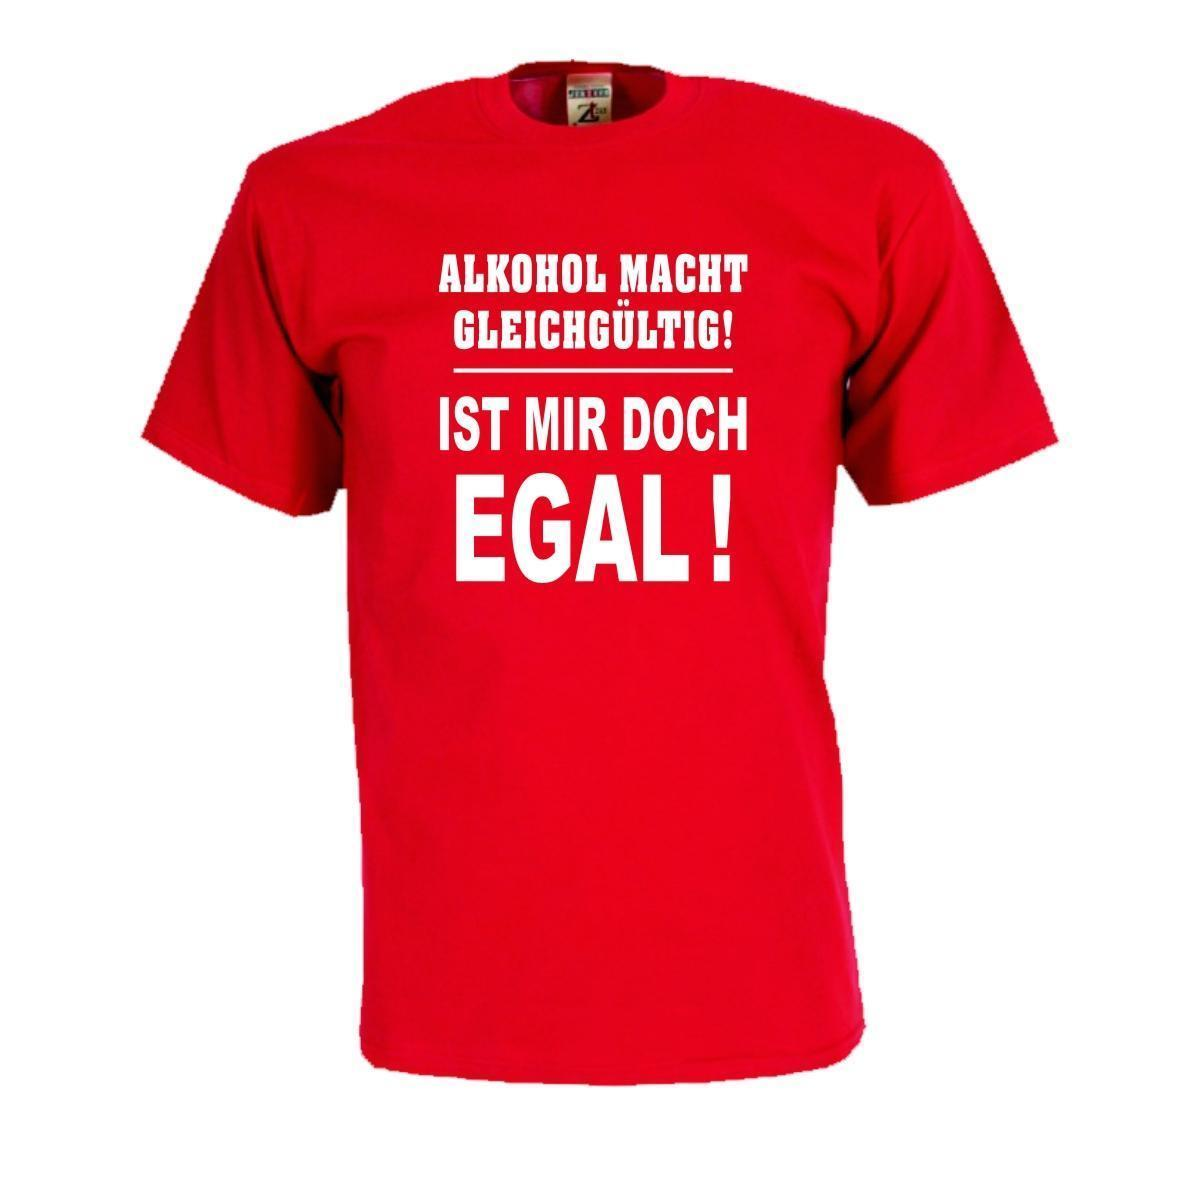 Alkohol Macht Gleichgültig ..., Coole Funshirts, Lustige Sprüche Shirts  FSB046Funny Unisex Casual Tshirt Biker T Shirts Make Your Own T Shirts From  ...